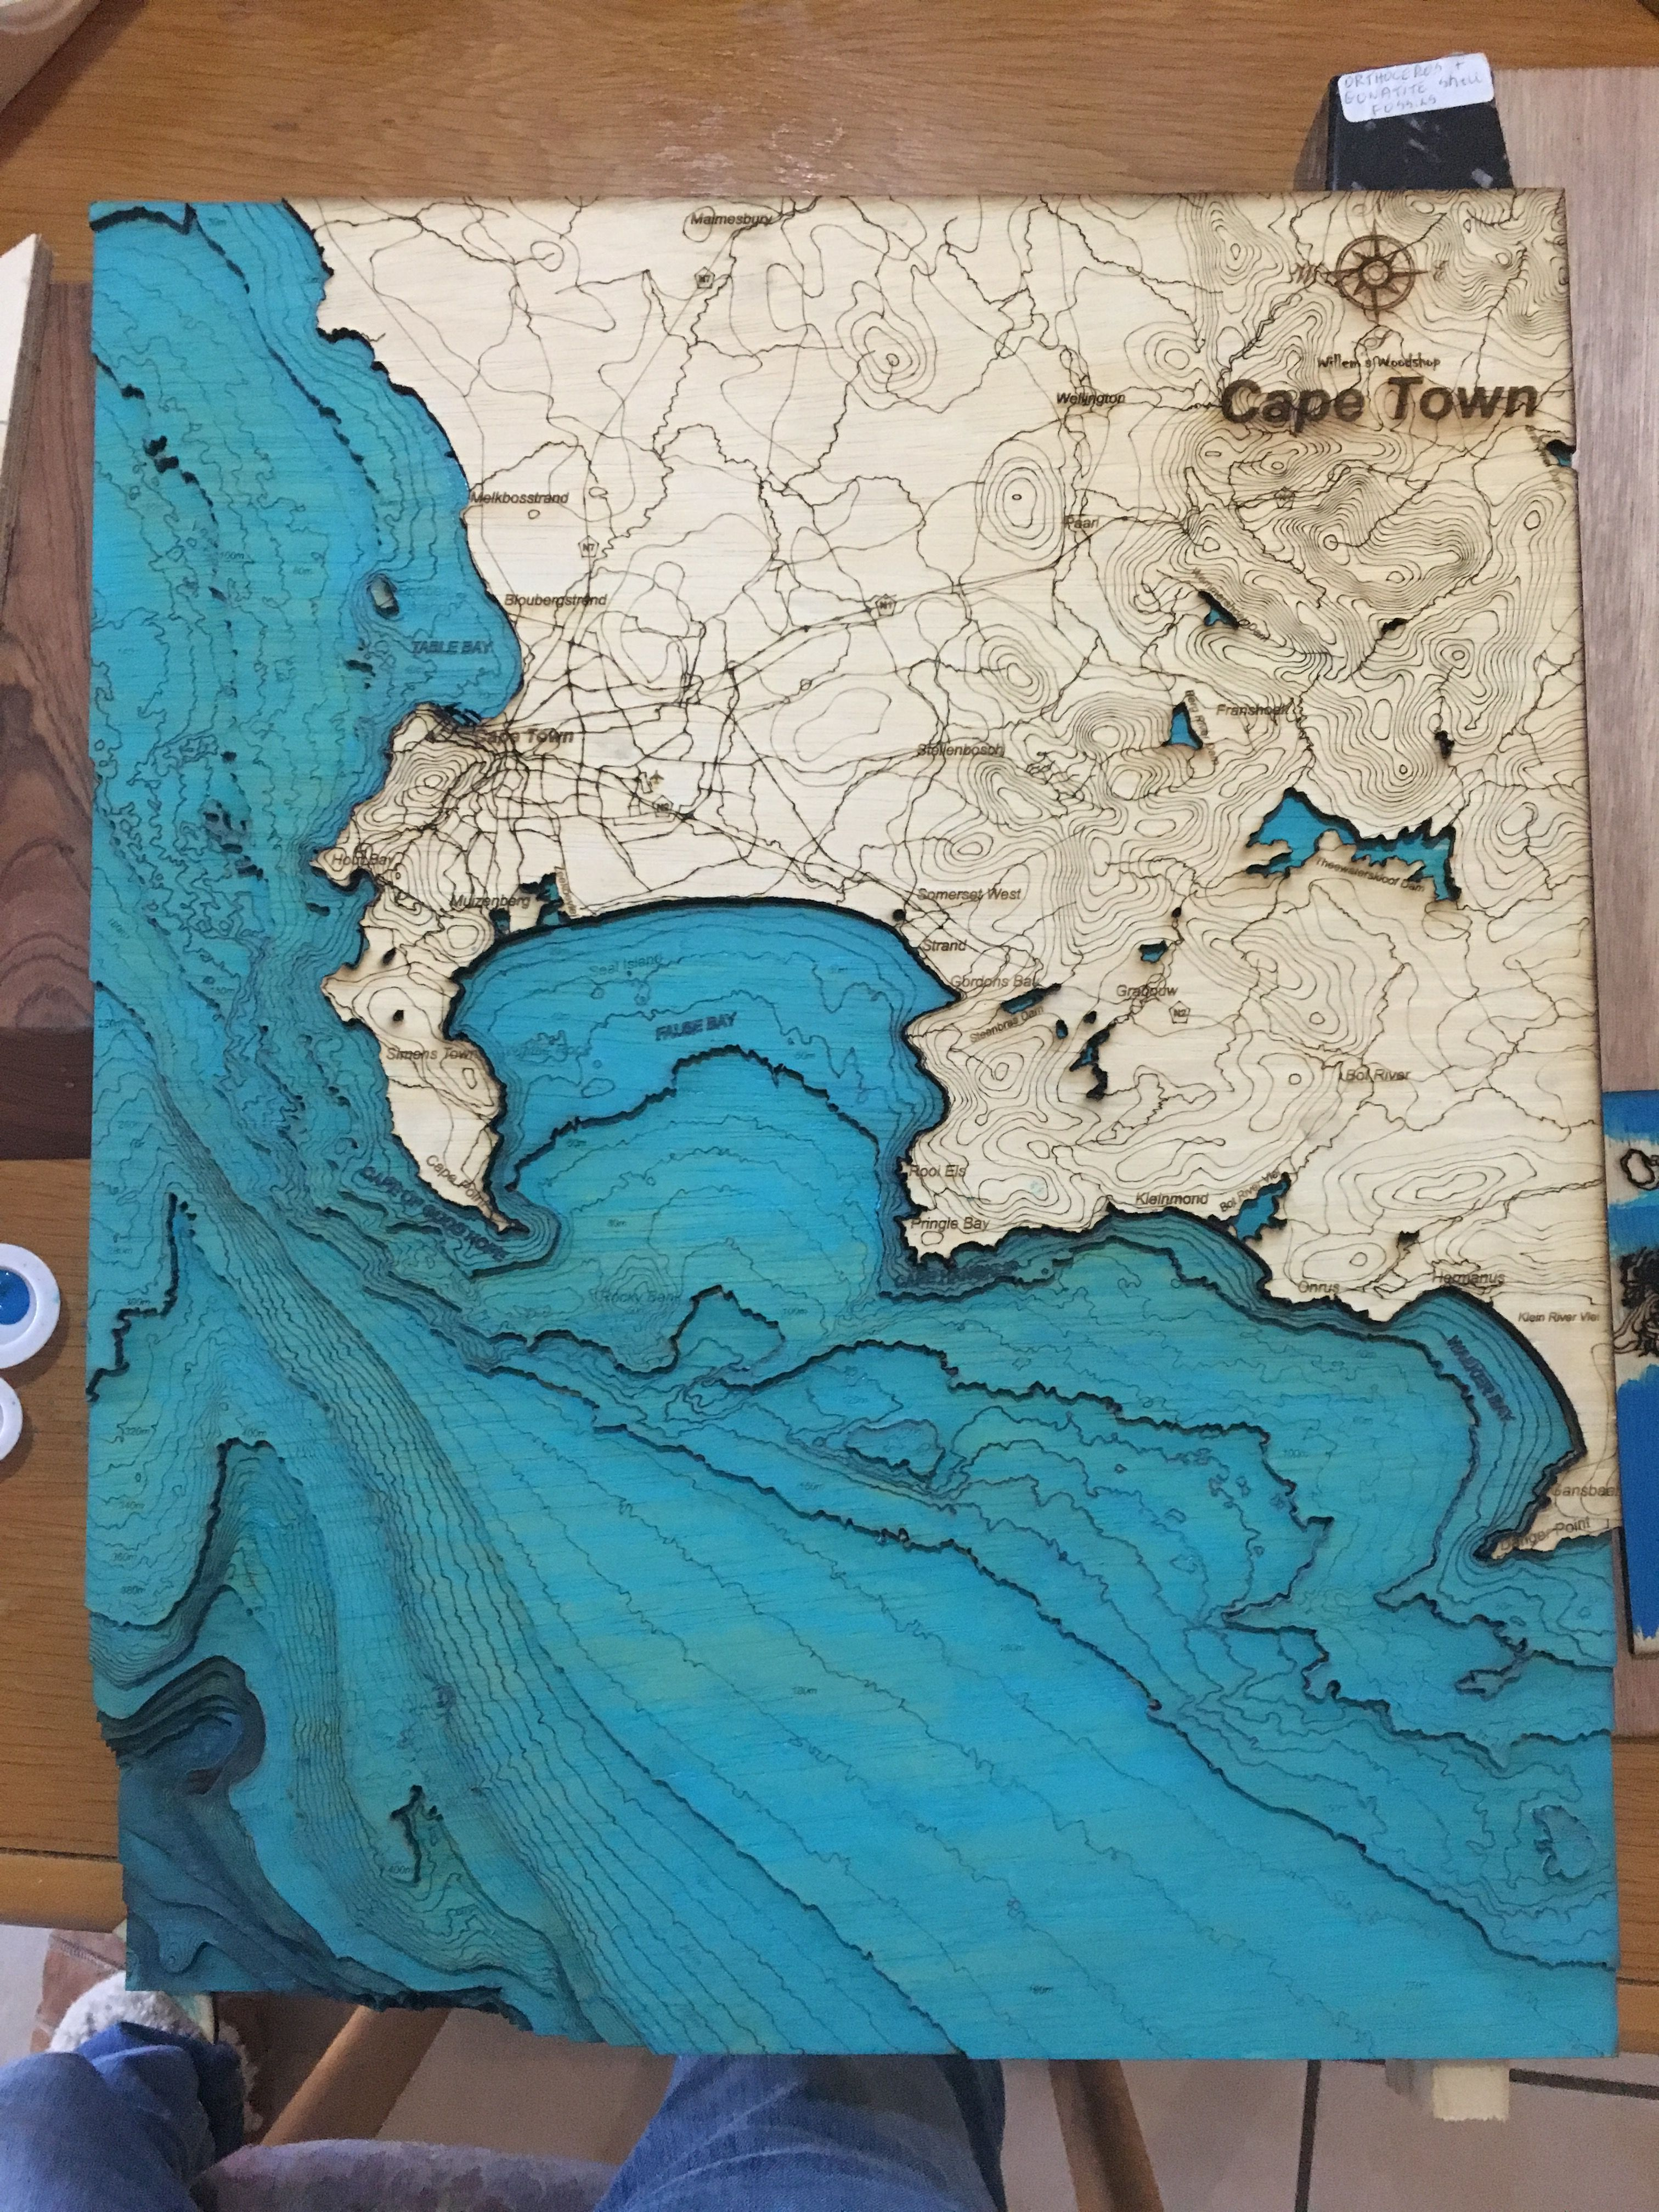 3D Wooden Bathymetric Map of Cape Town (South Africa) made from